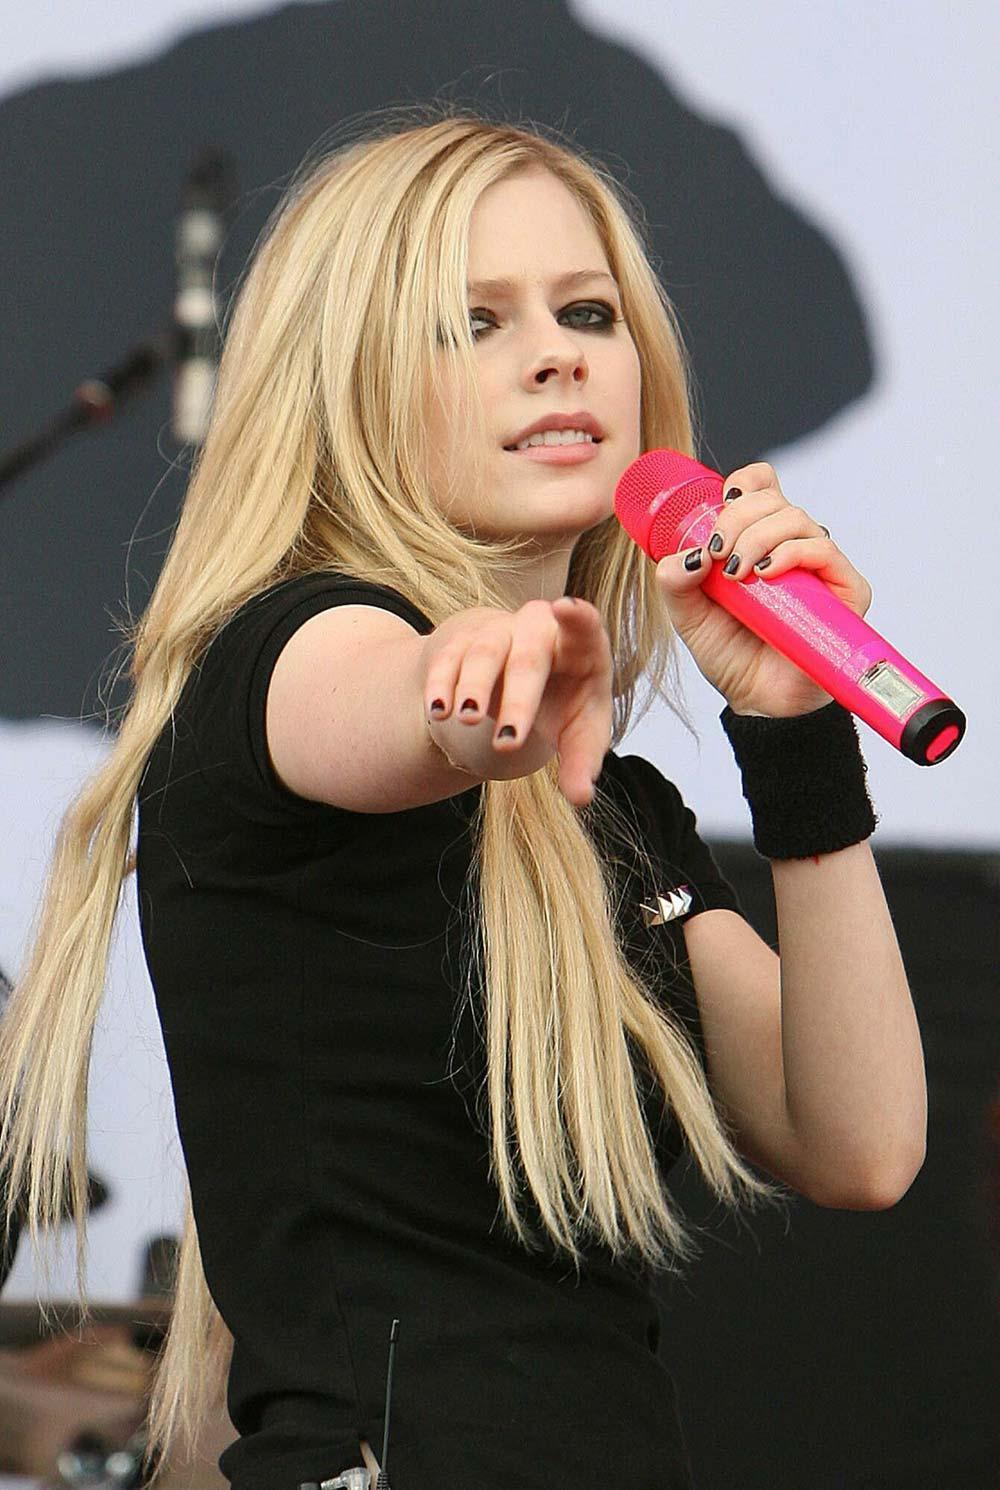 avril lavigne images avril singing hd wallpaper and background